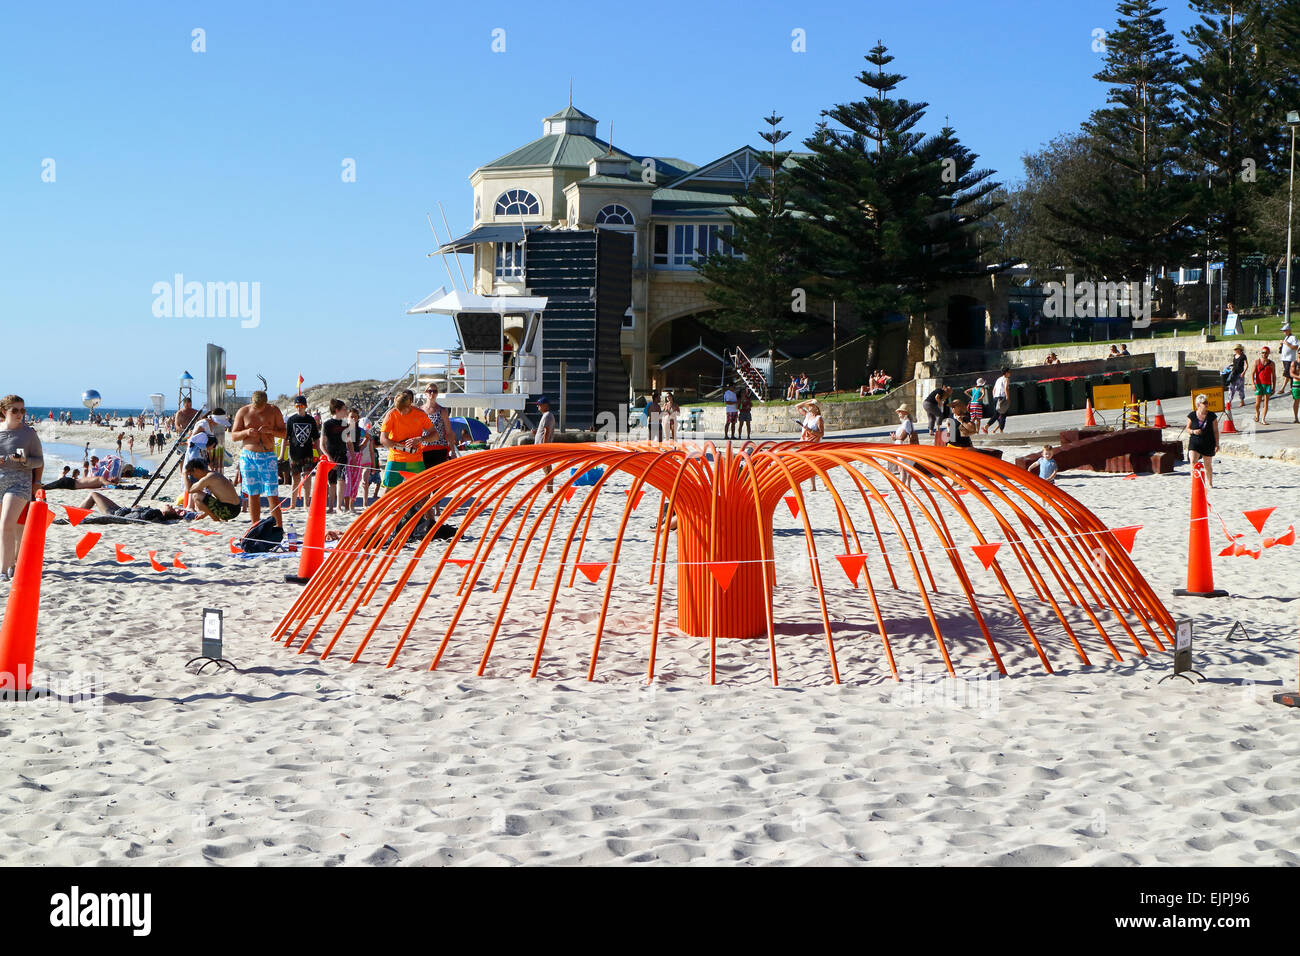 Artwork on display at the 2015 Sculpture By the Sea event. Cottesloe Beach, Perth, Western Australia. Stock Photo